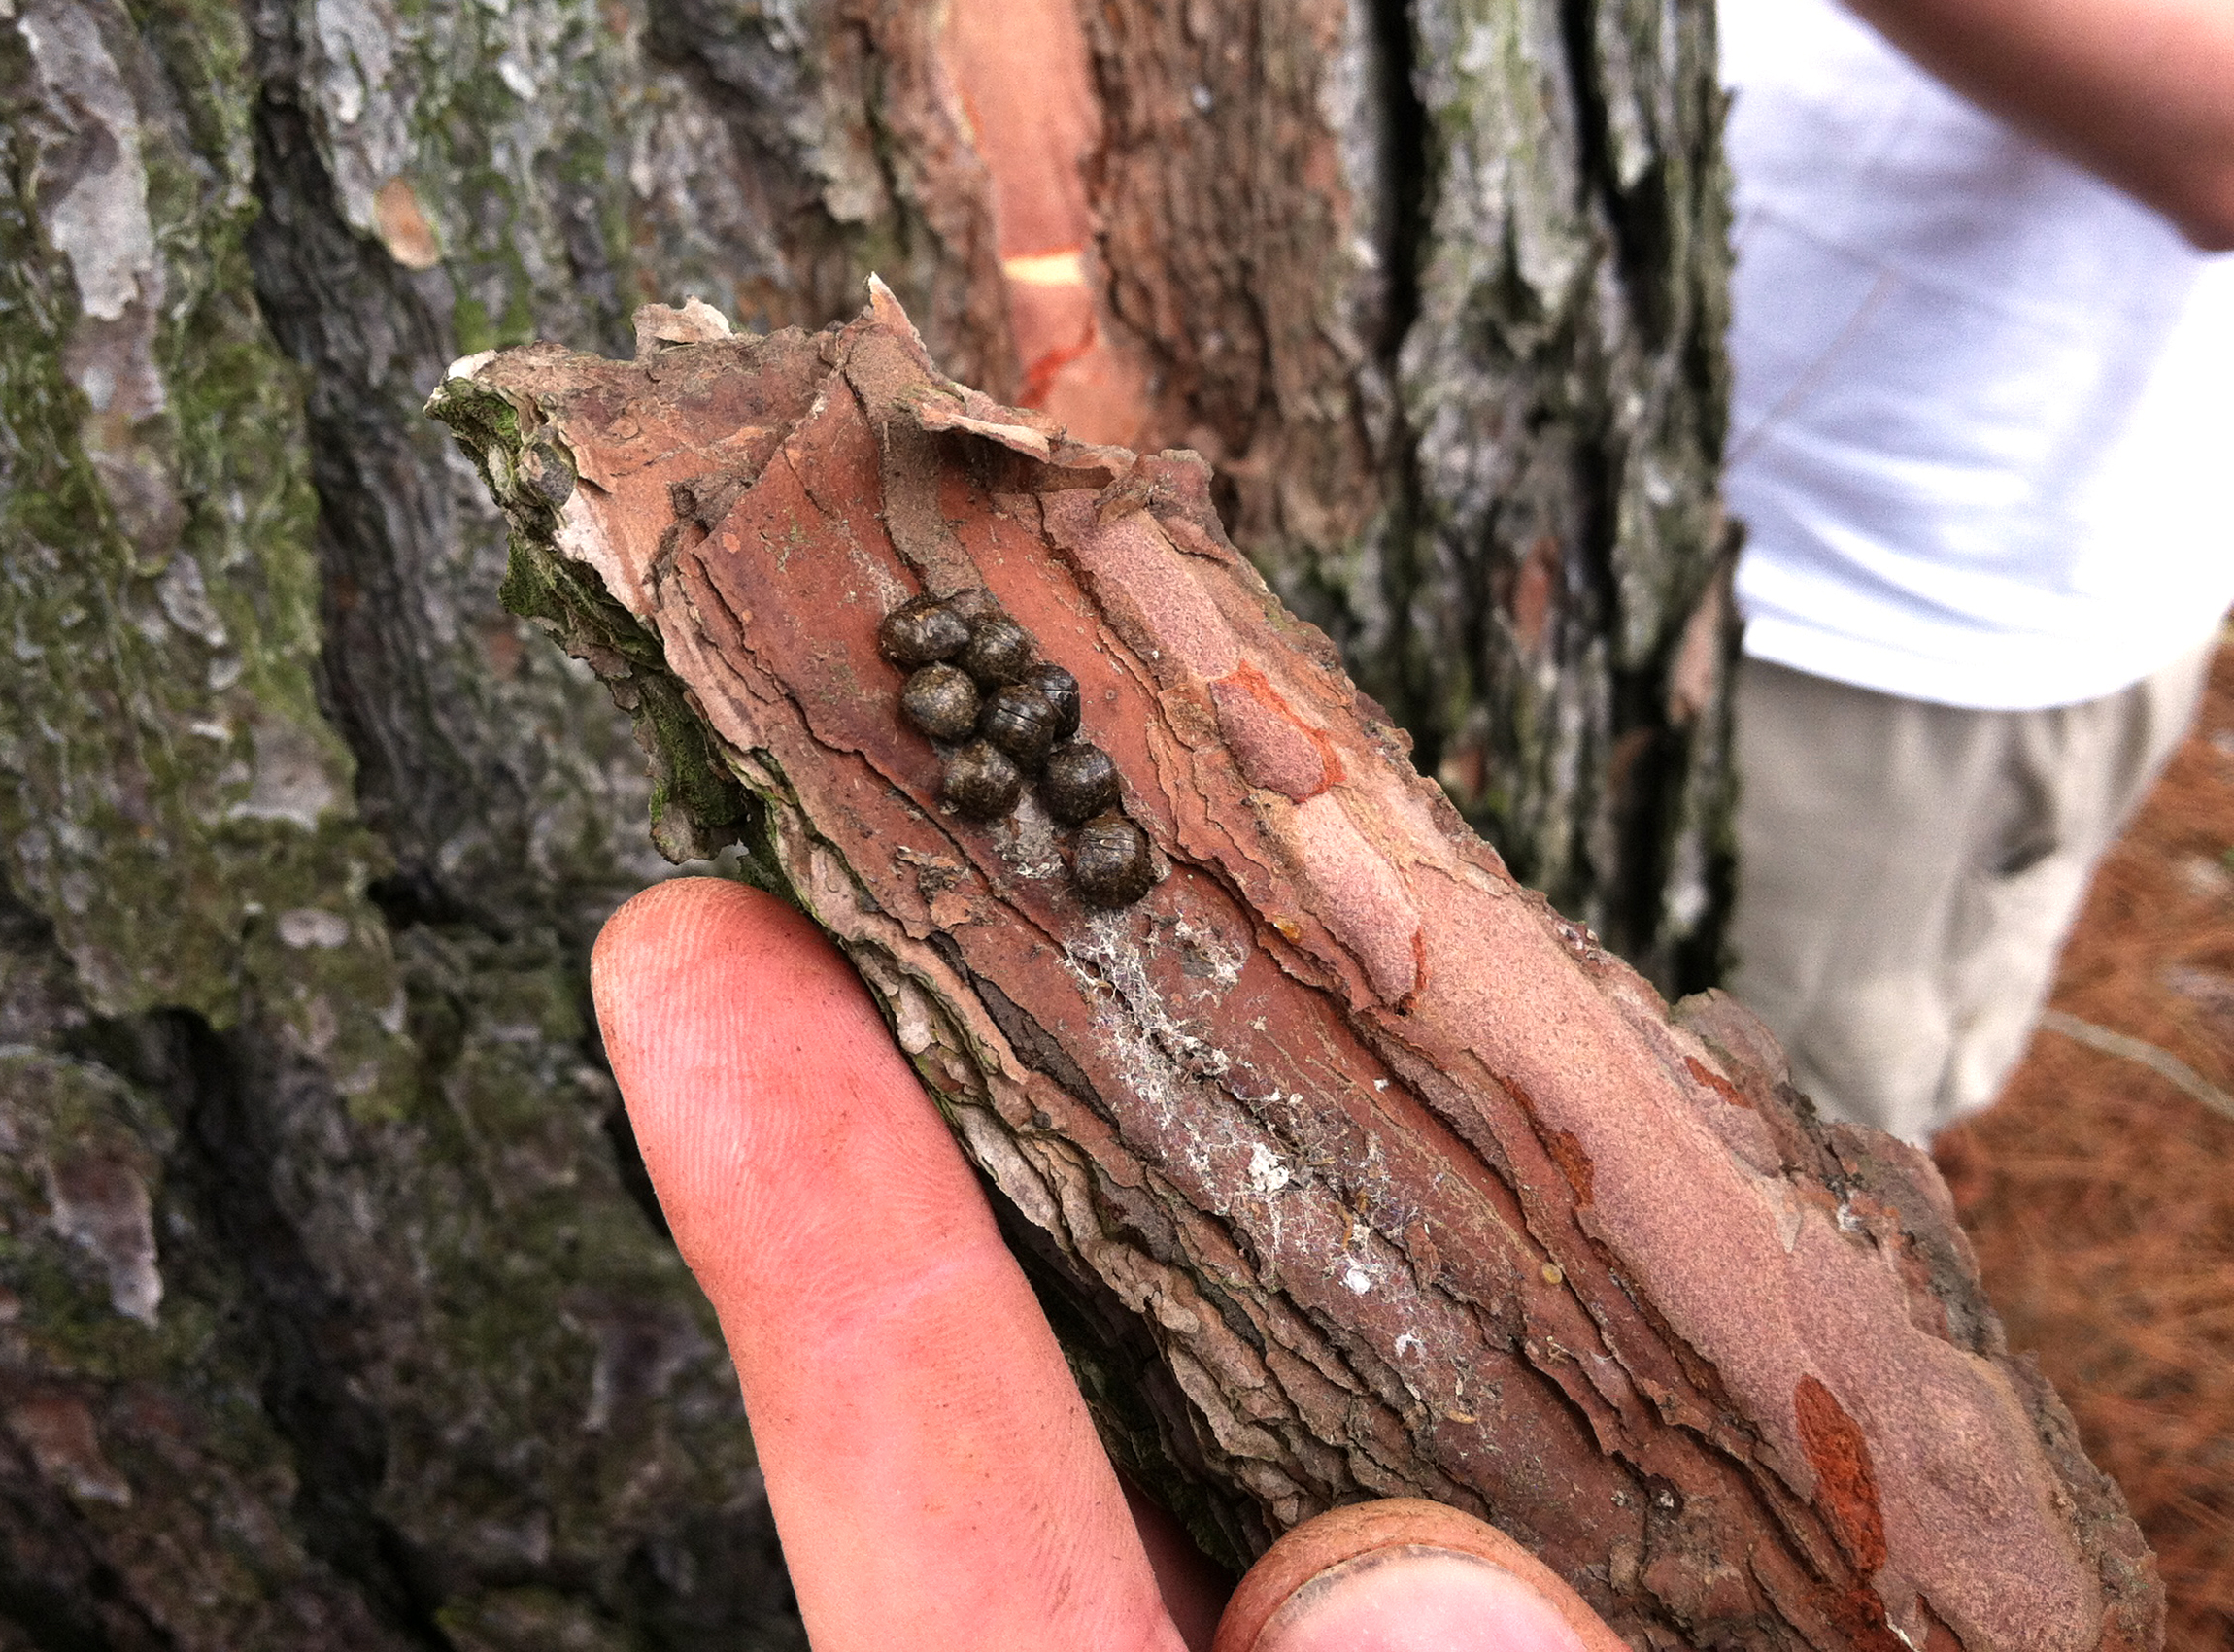 Like these kudzu bugs overwintering in bark, invasive species can reduce biodiversity and productivity, weaken local economies, and impact human and animal health.